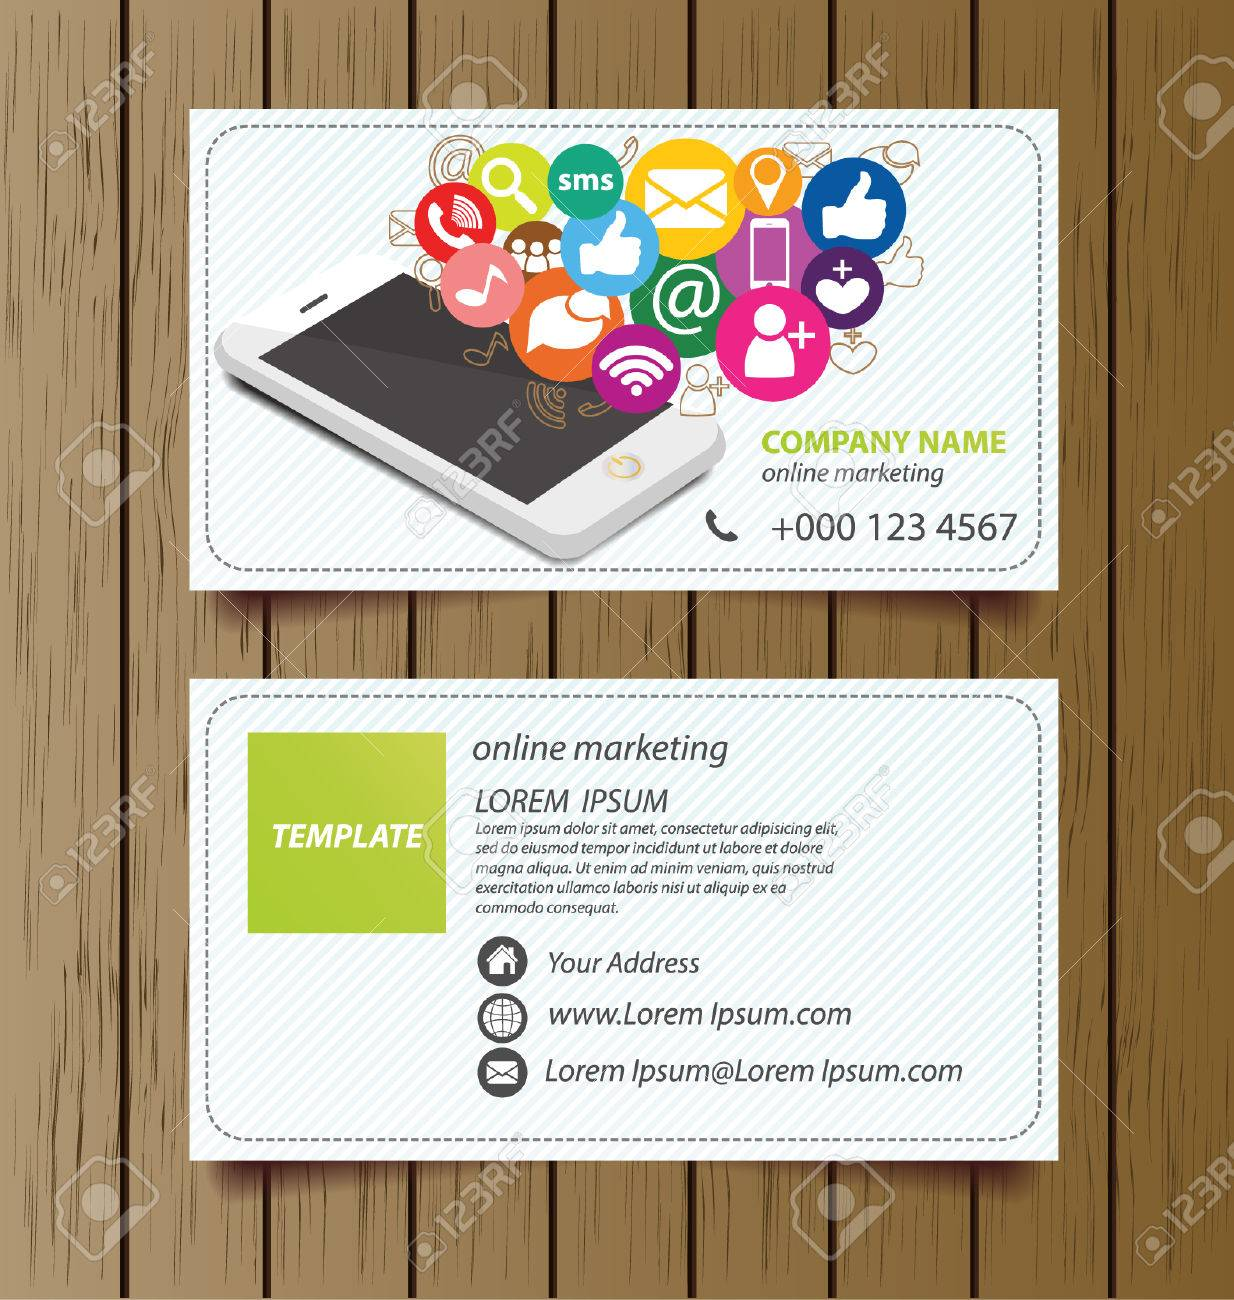 Business Card Template For Online Marketing Vector Royalty Free Cliparts Vectors And Stock Illustration Image 28388474